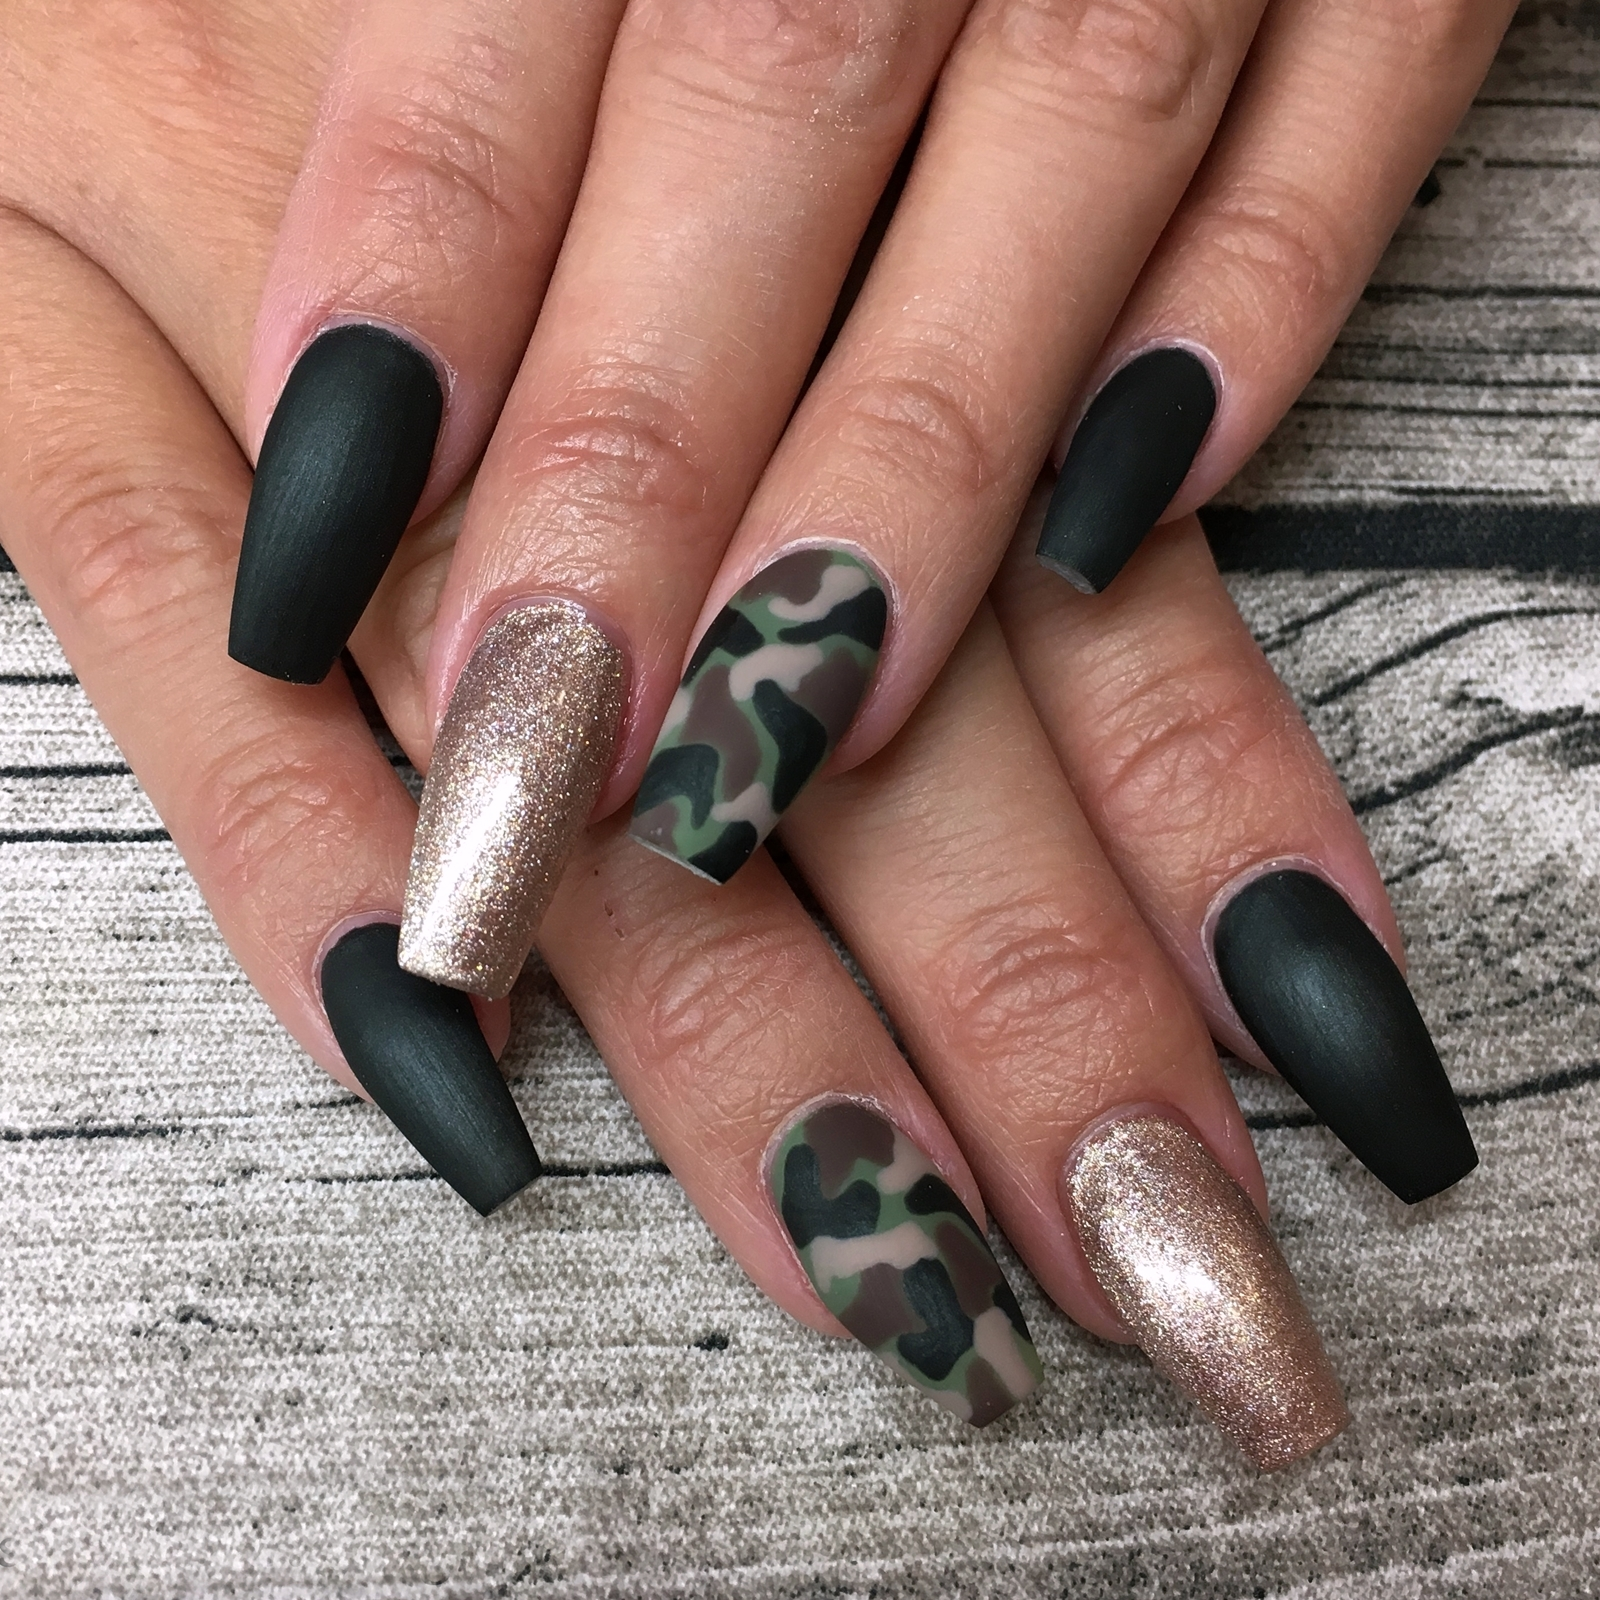 Nails art design images